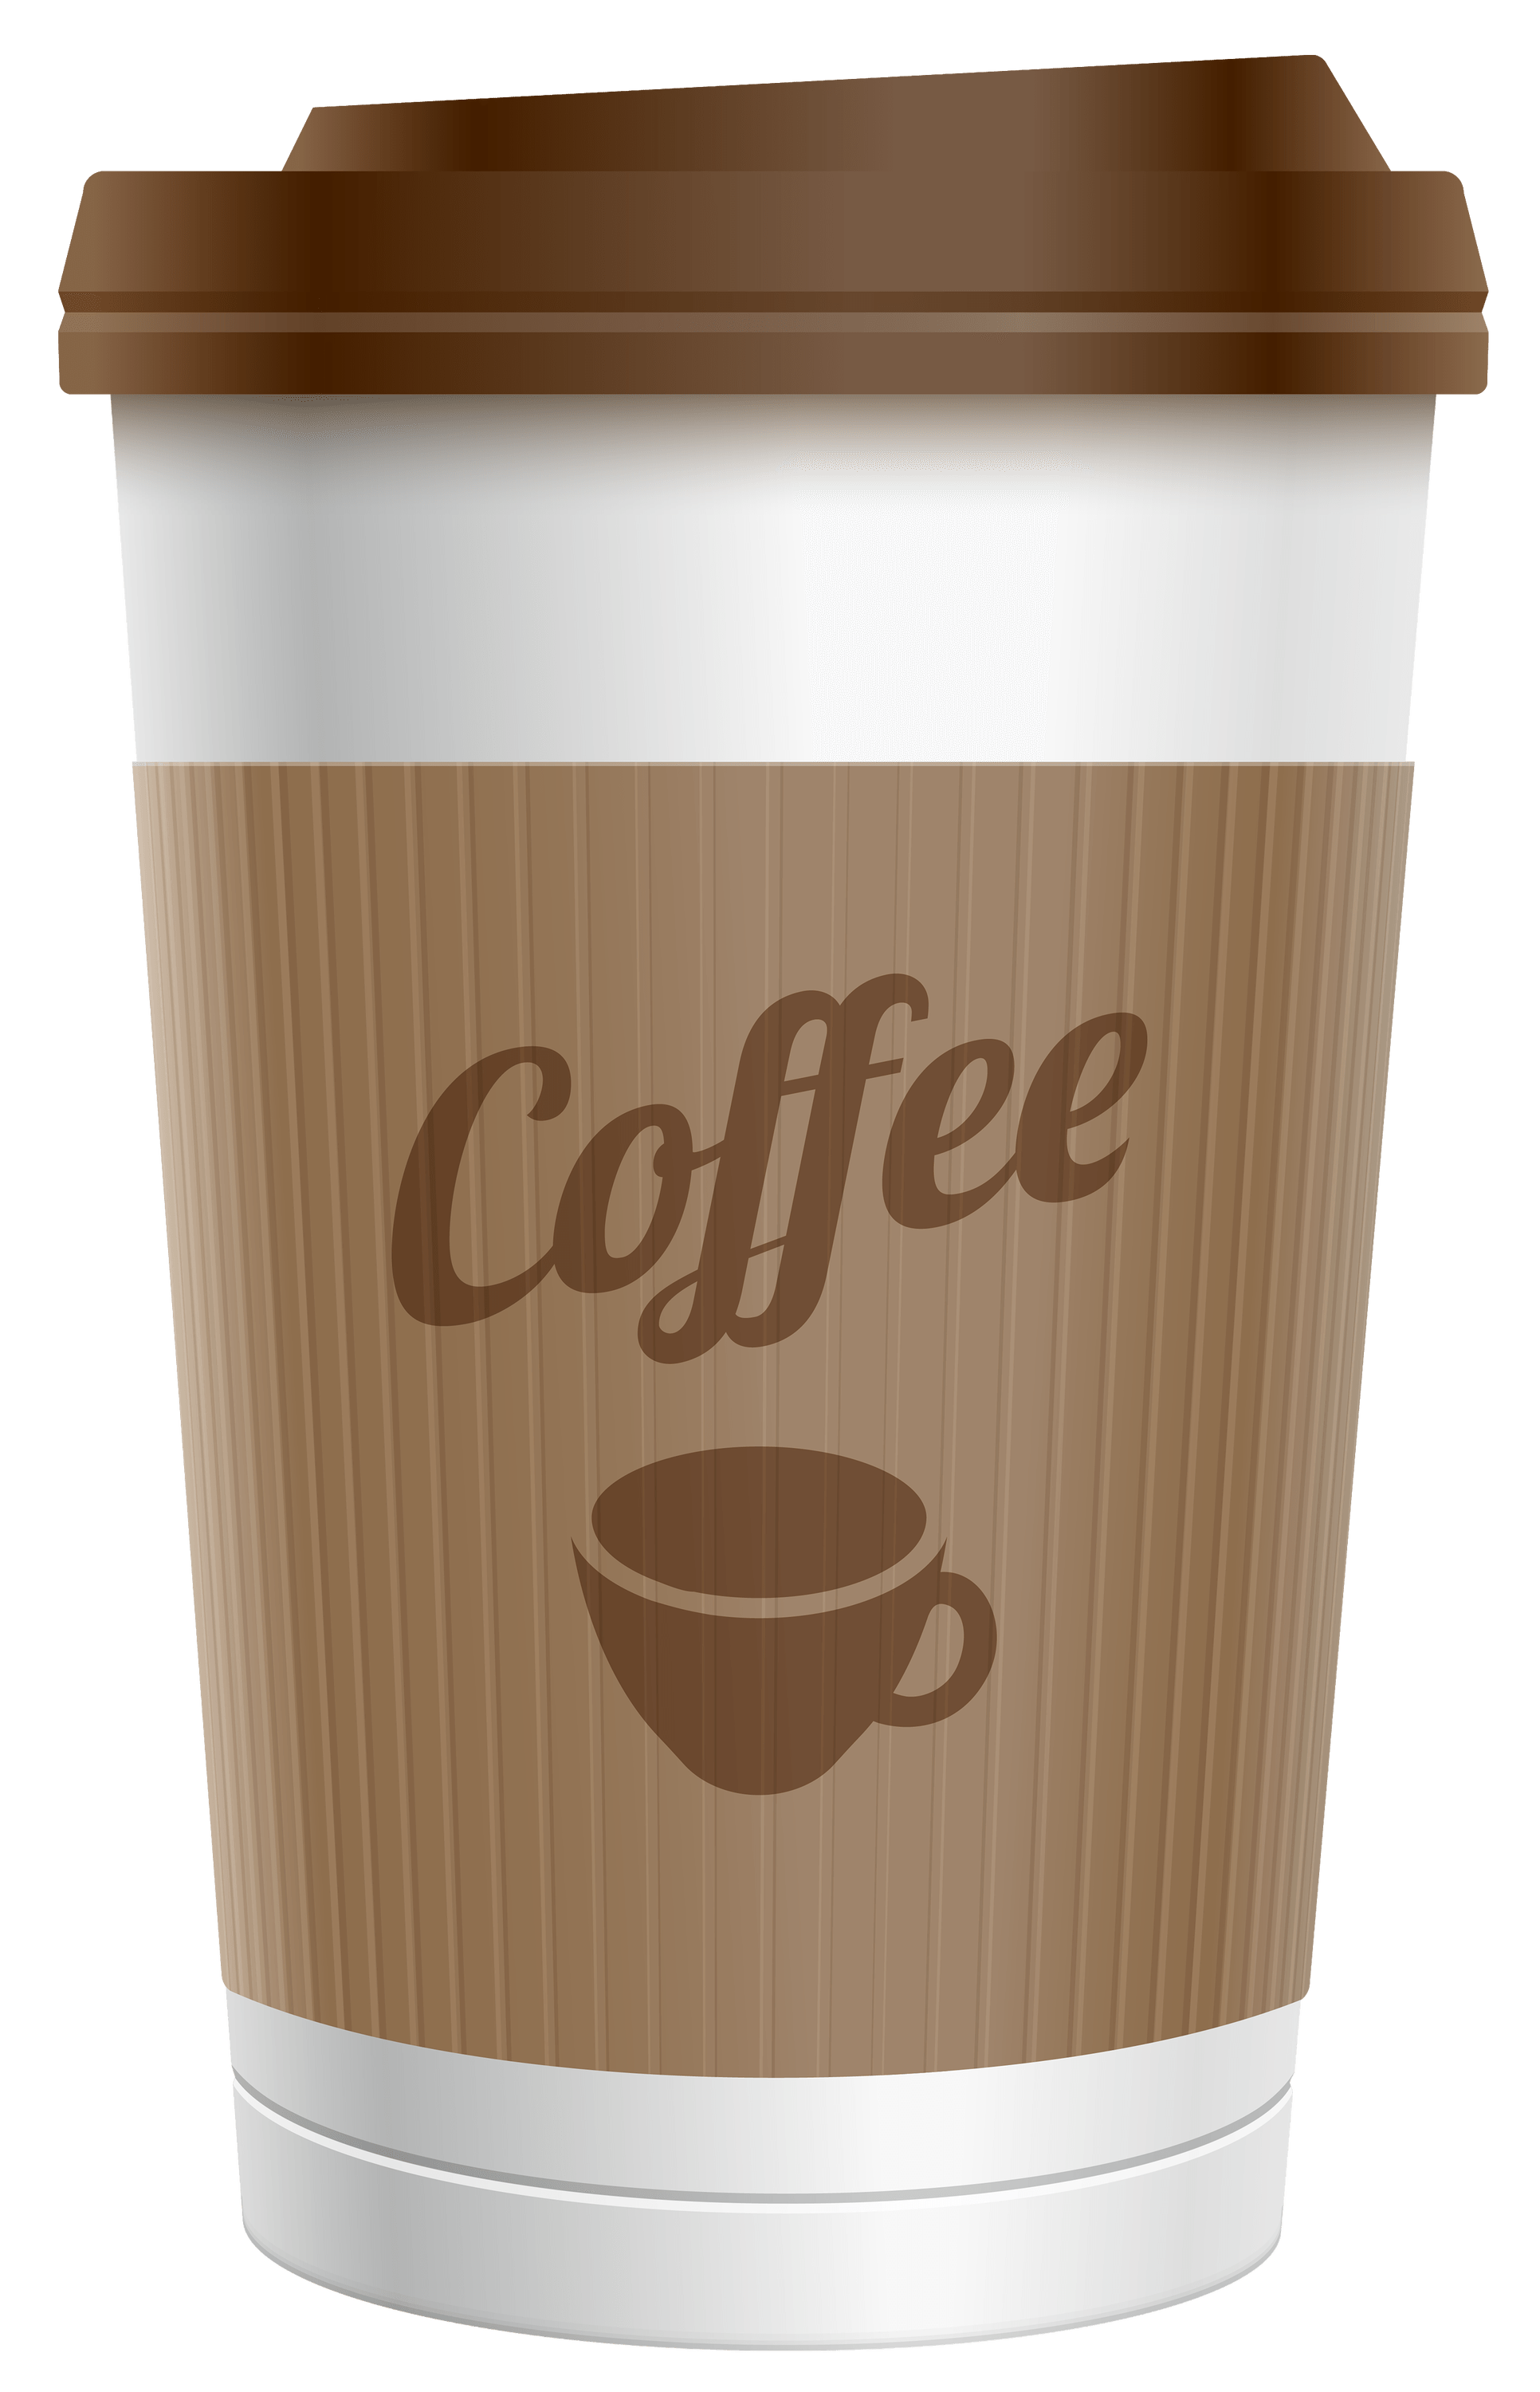 Mug clipart cafe cup PNG Papercup Mug Plastic Coffee